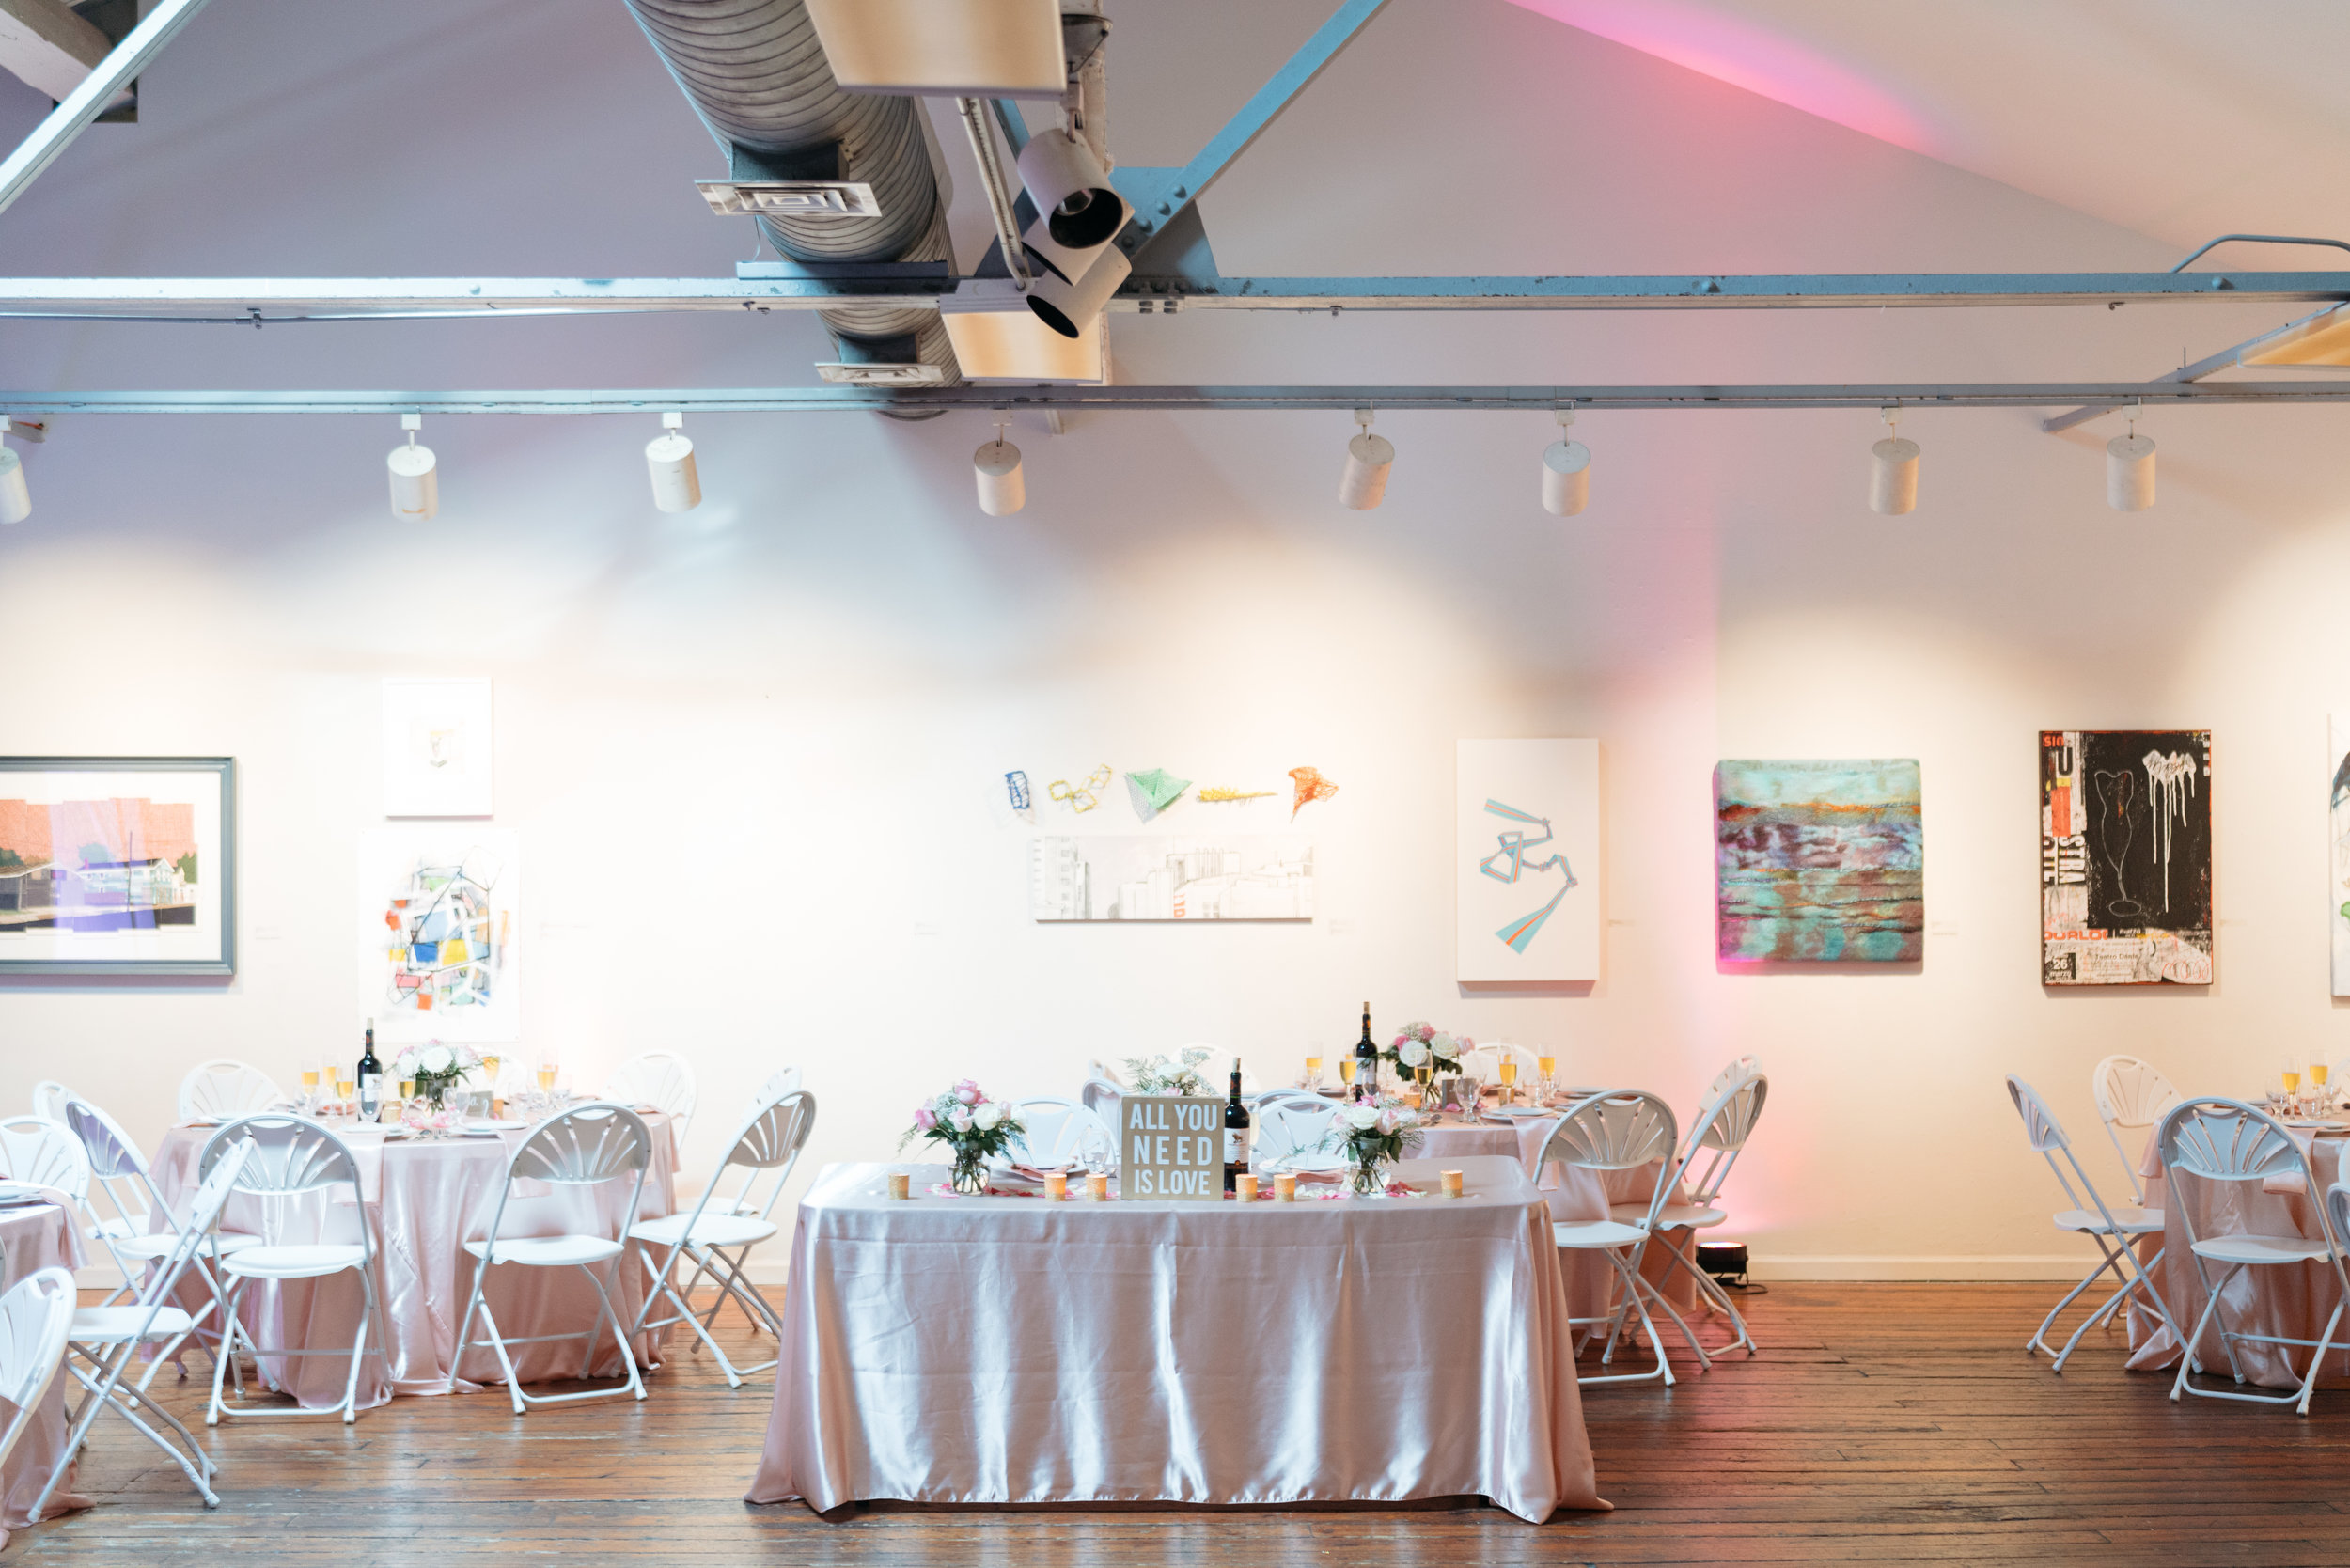 The only obstacle for us with this venue as a whole was making sure the artwork was family friendly- which several pieces were not- thanks to my mom and wedding planner, Jessica Hubacher- they were taken down- hence the empty space.  Bryan and I ended up opting for a sweetheart table and opted to use what the venue provided: a 6 ft. rectangular table. It may seem big and in retrospect it was fantastic. My mom decorated it with flower arrangements she created, one of the vases on the table was very special to me as it was a gift from my mother in law, and a few gold votives, and of course a bottle of amazing chilean wine. The  Chilean wine  was a huge hit, my mom purchased it very inexpensively at her local Trader Joe's.